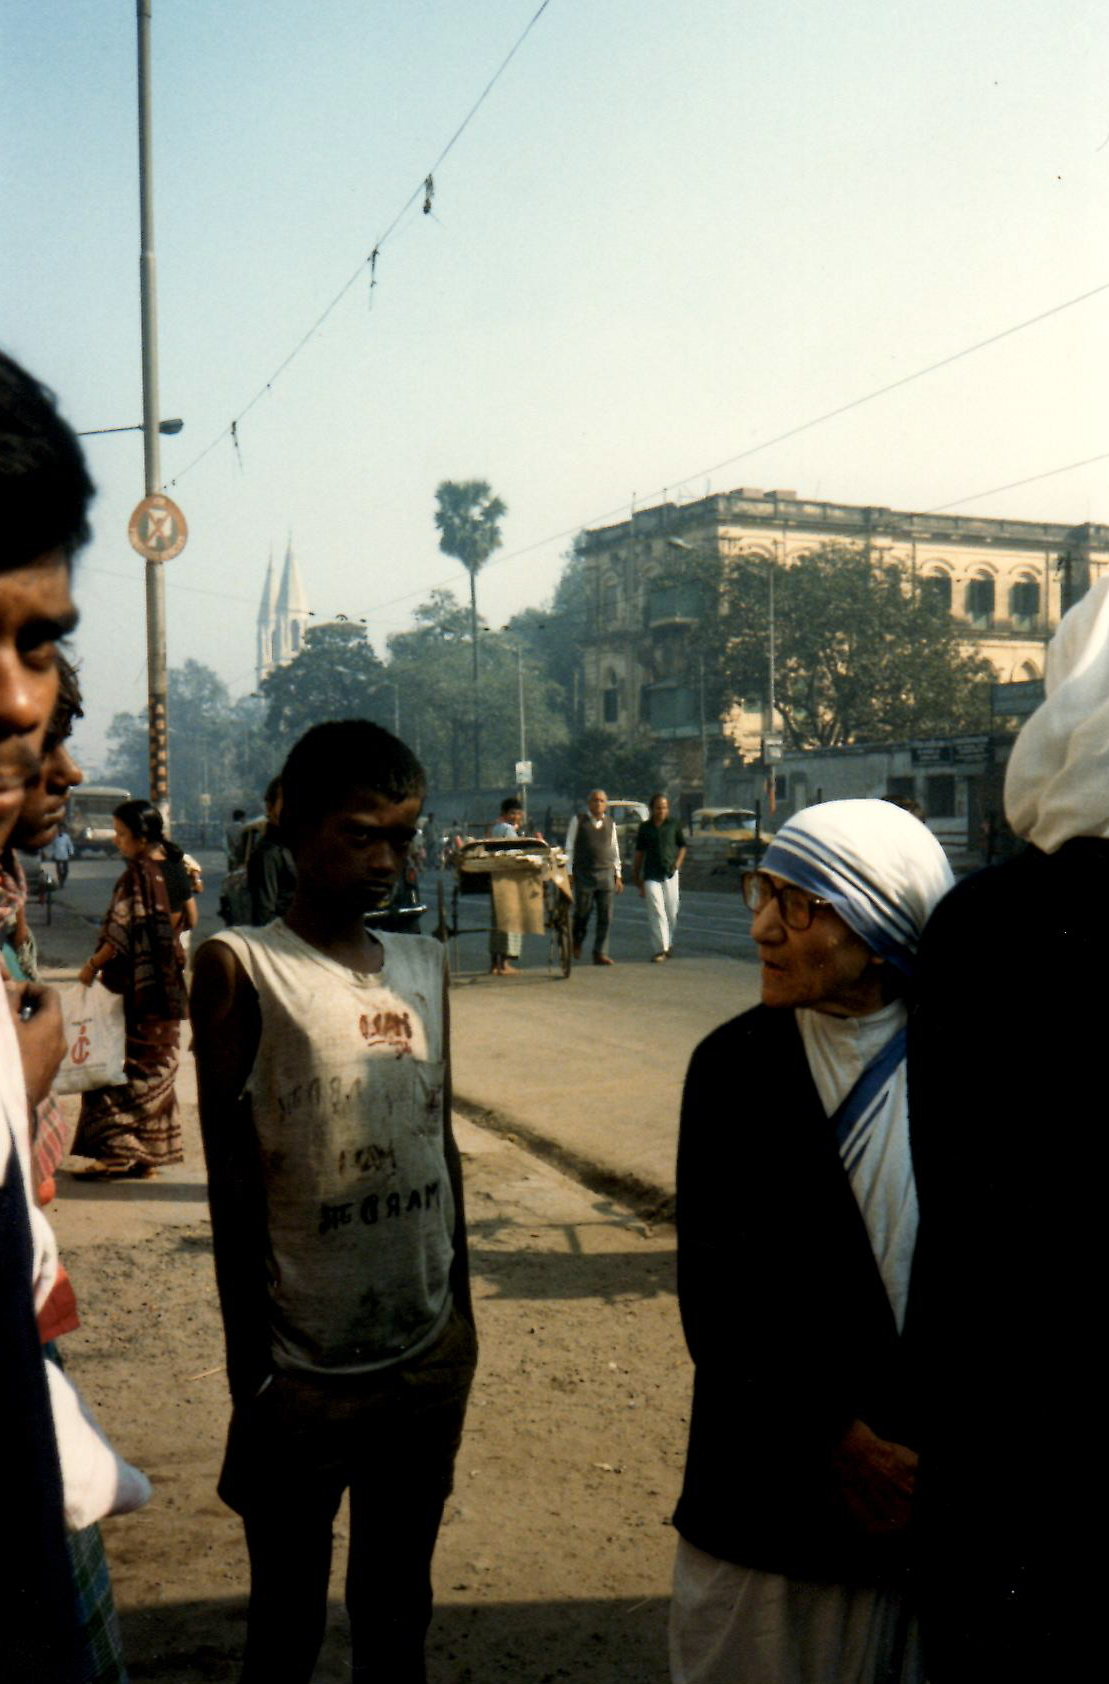 Mother Teresa, right, on the streets of Calcutta, India, during a 1986 visit from Brigham Young University's Young Ambassadors.